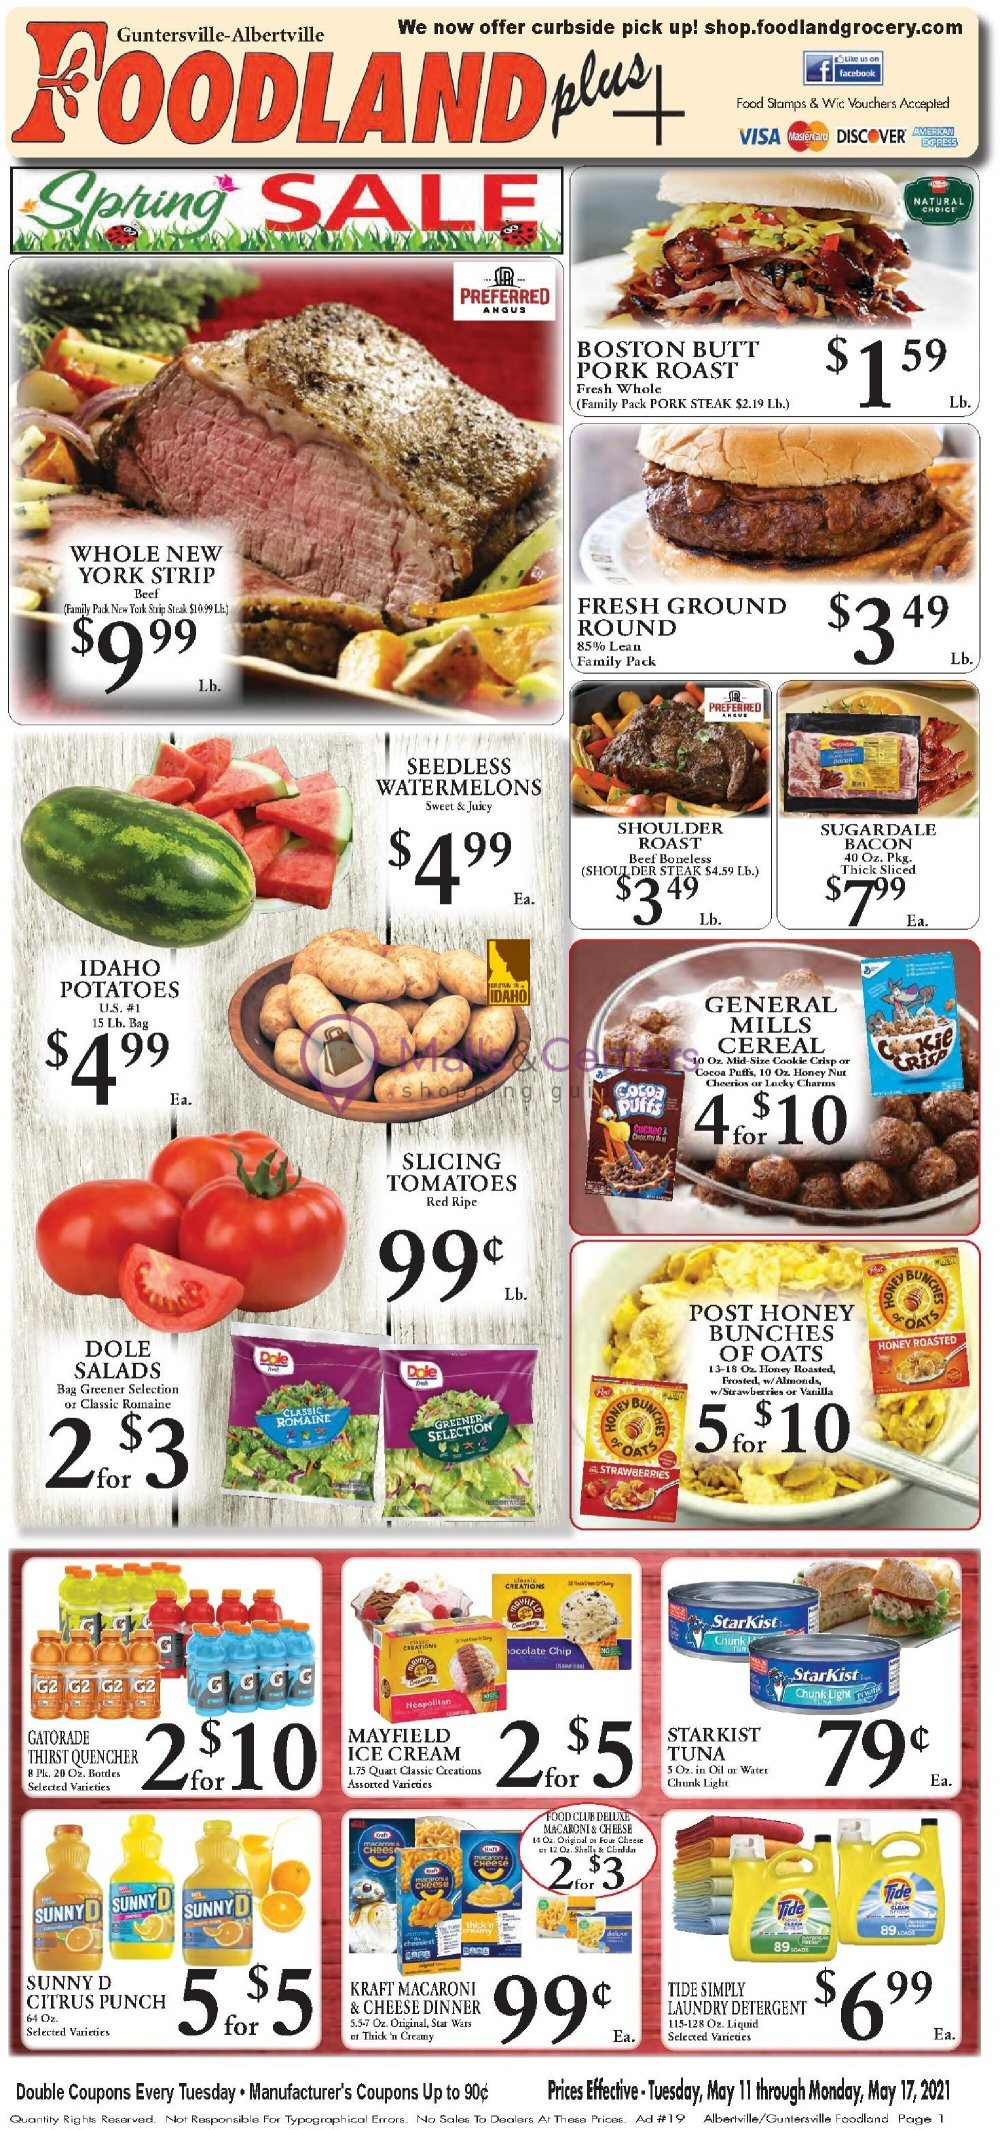 weekly ads Foodland Grocery - page 1 - mallscenters.com